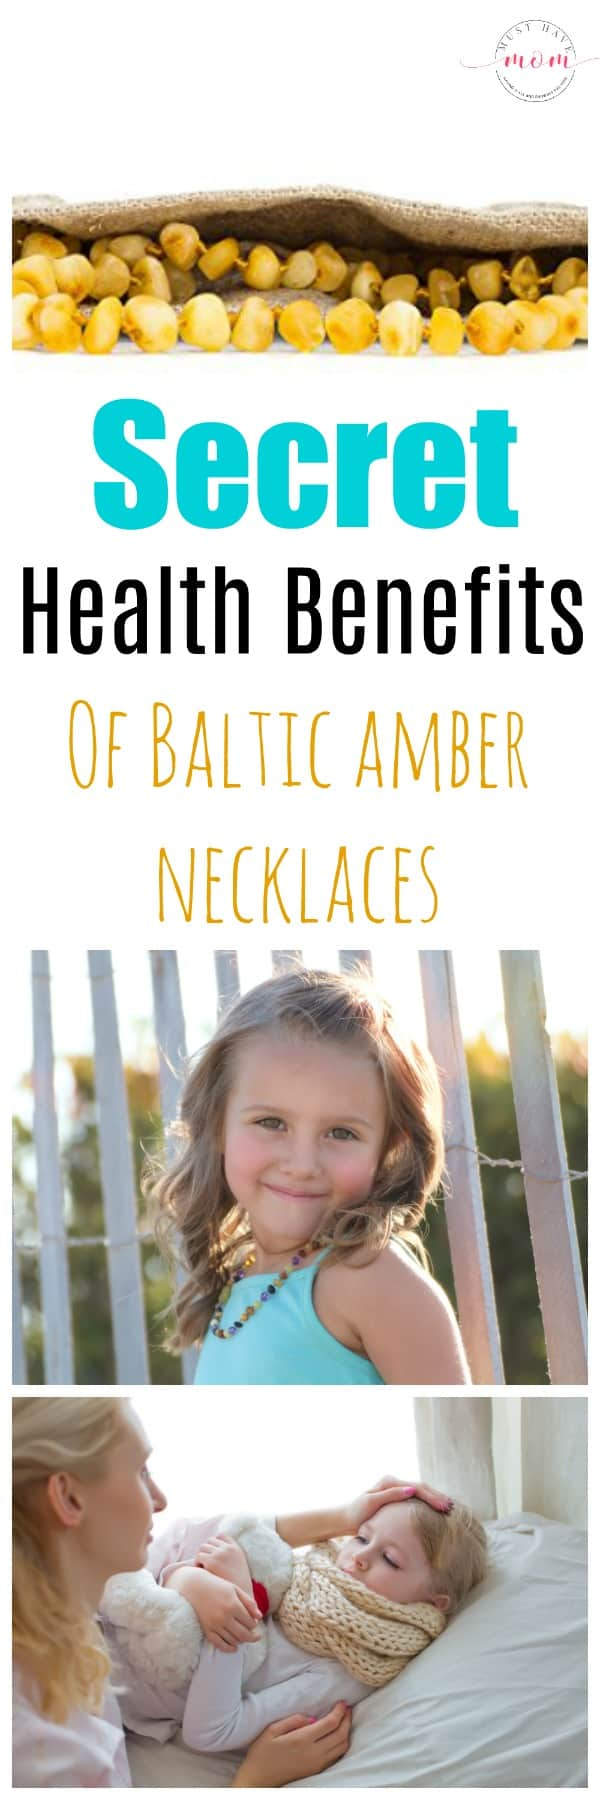 Secret health benefits of wearing baltic amber necklaces.